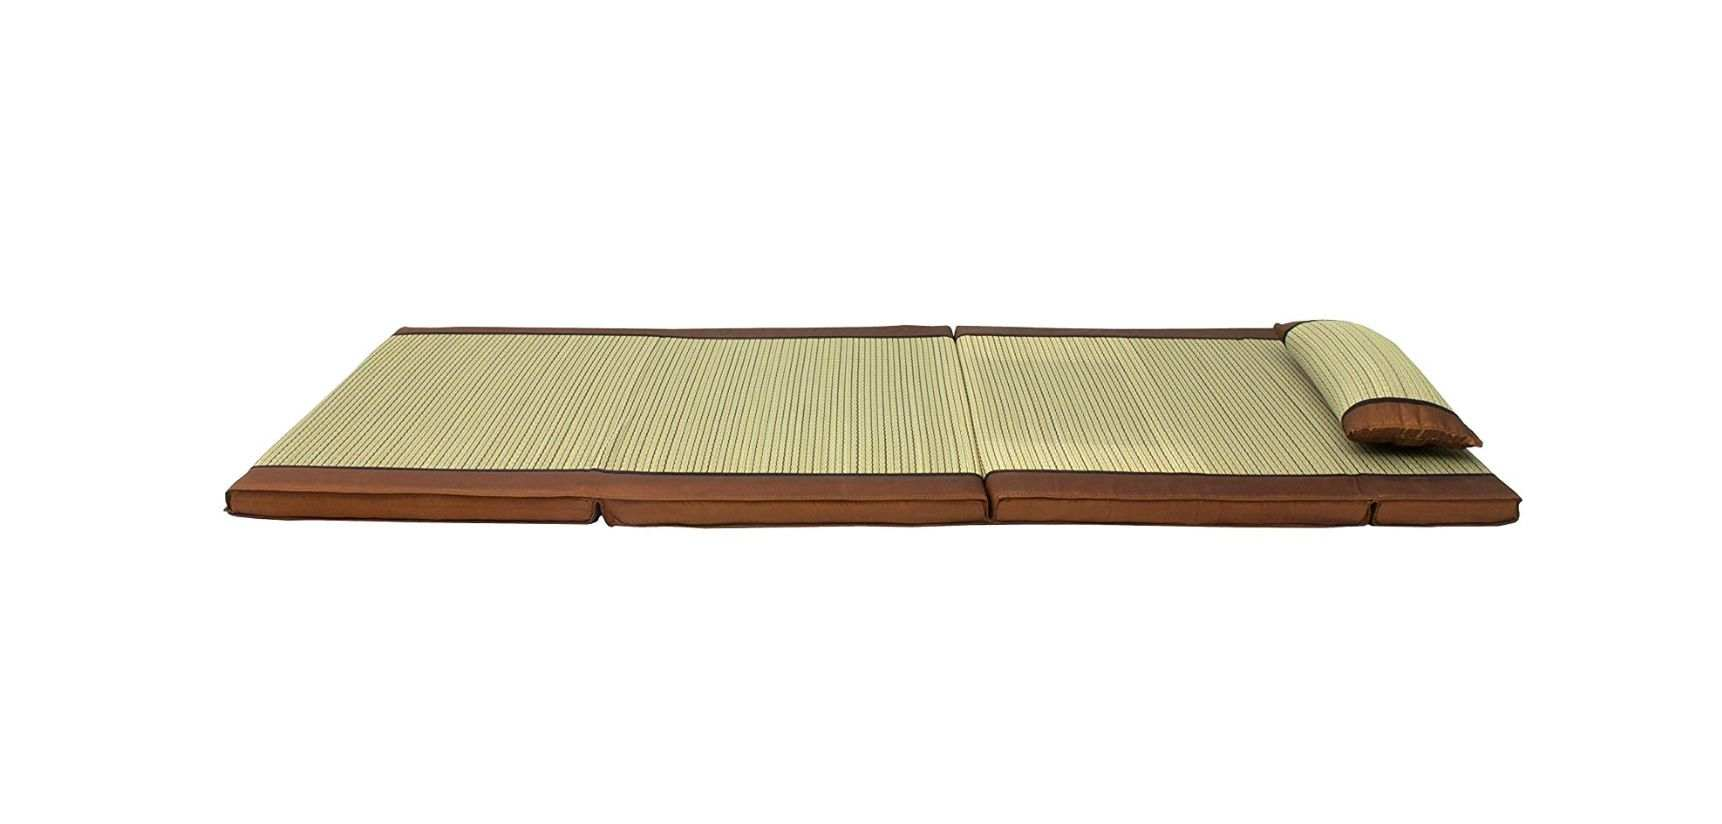 Oriental Furniture Tatami Mattress – Best for Back Pain